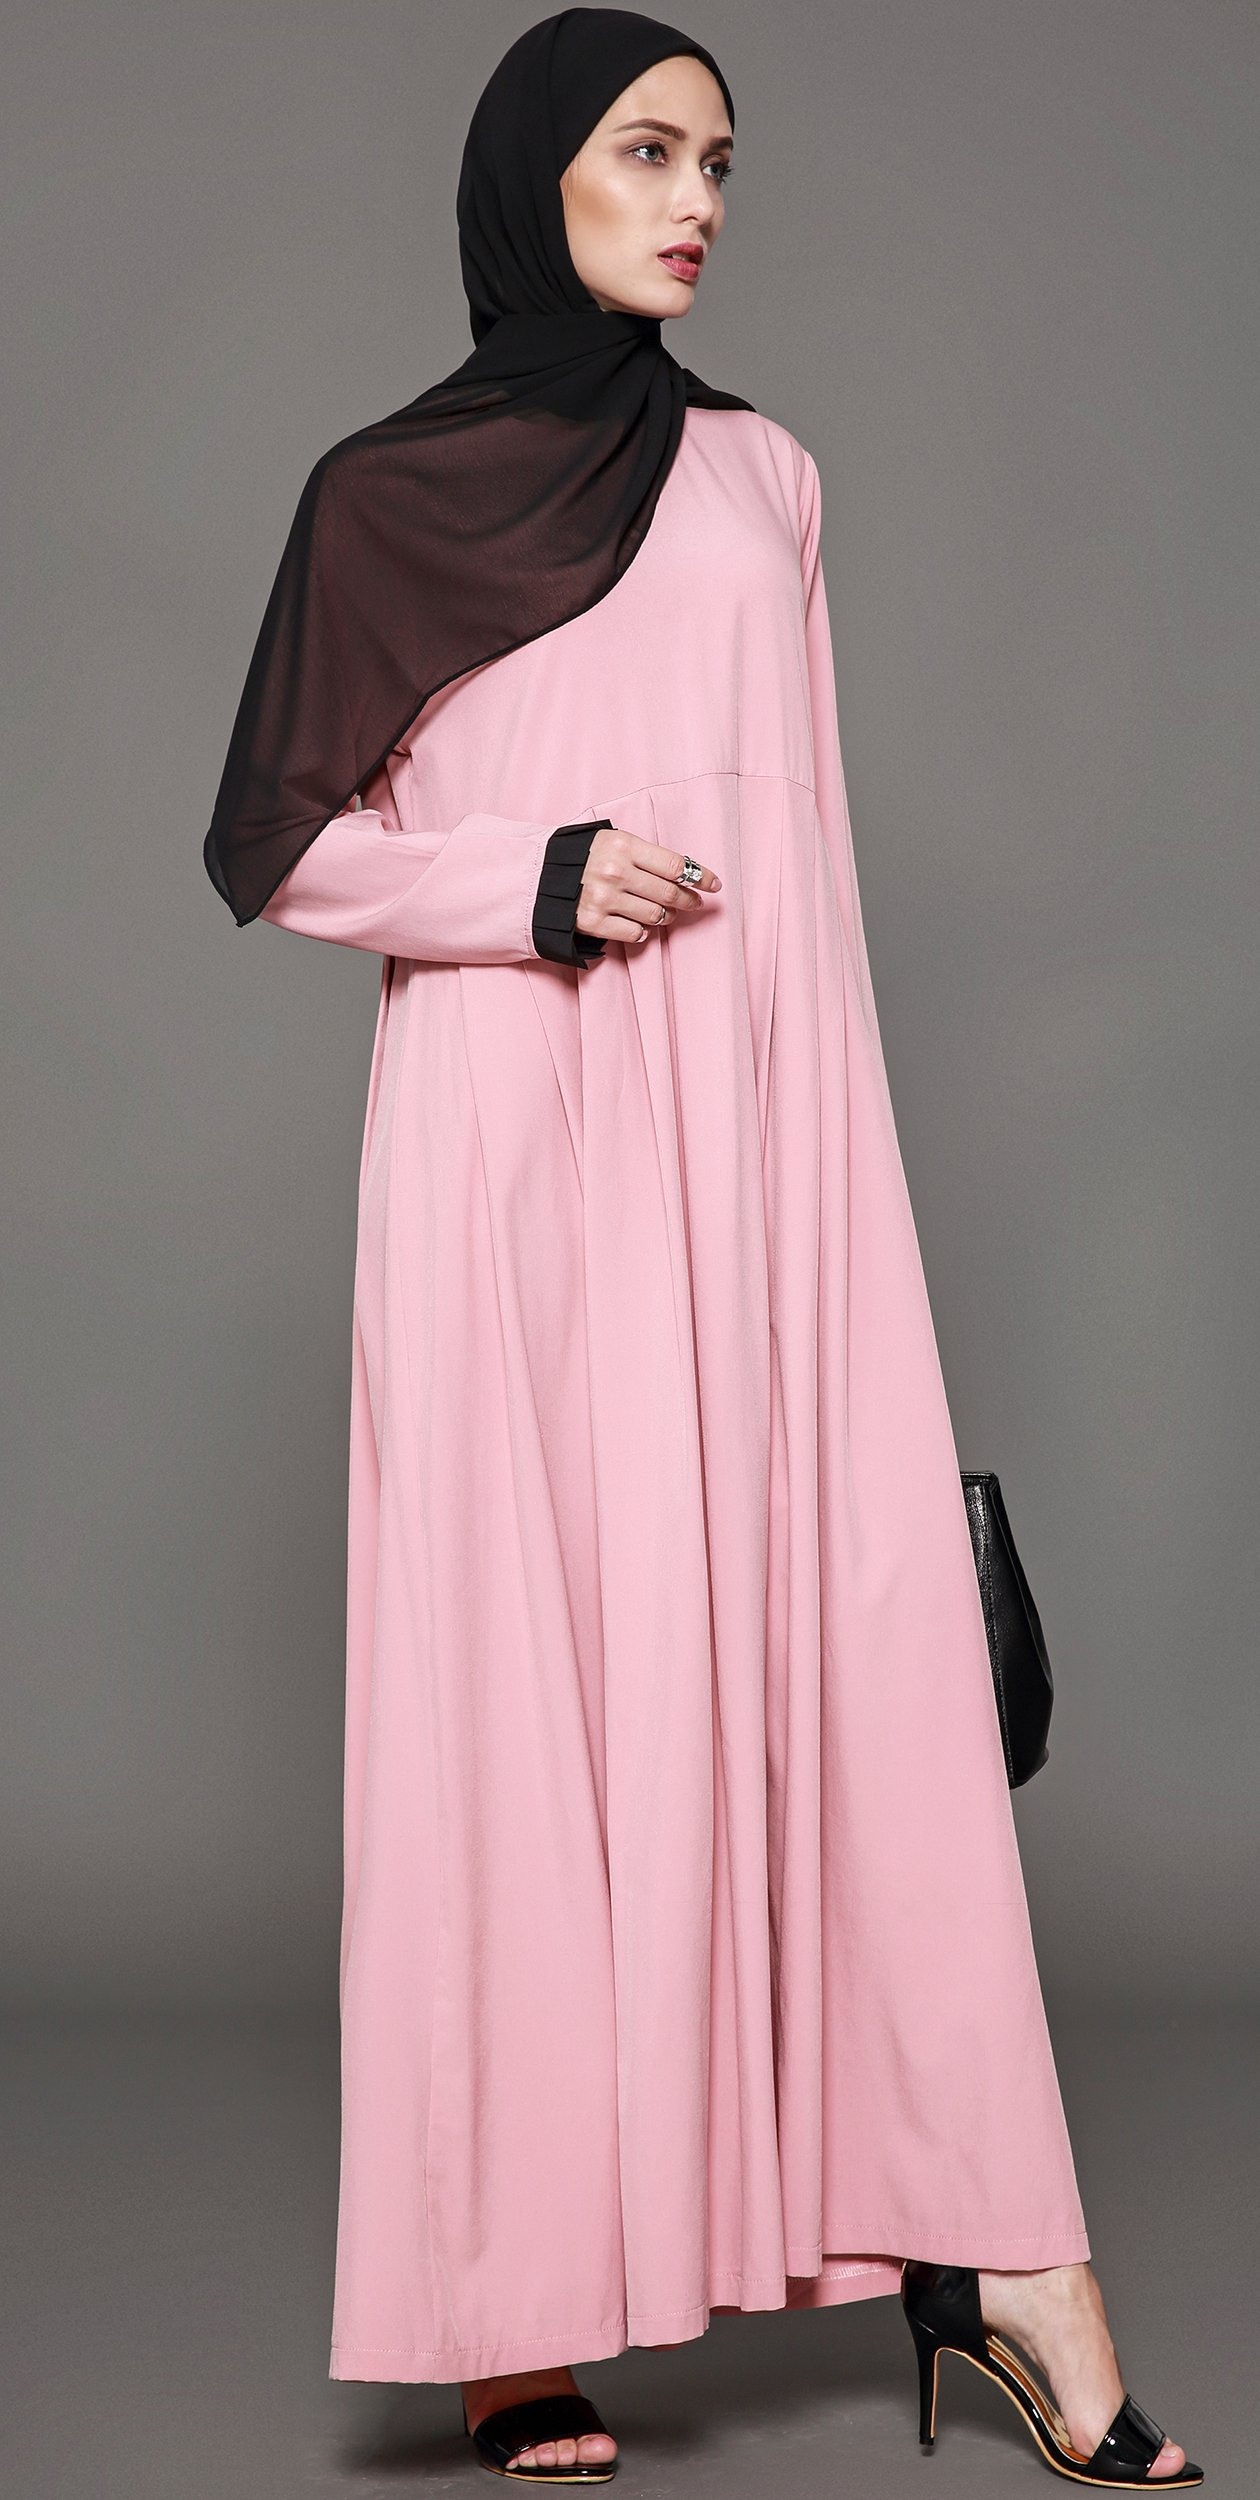 Ababalaya Women's Elegant Modest Muslim Full Length O-Neck Solid Pleated Runway Abaya S-4XL,Pink,Tag Size L = US Size 10-12 by Ababalaya (Image #5)